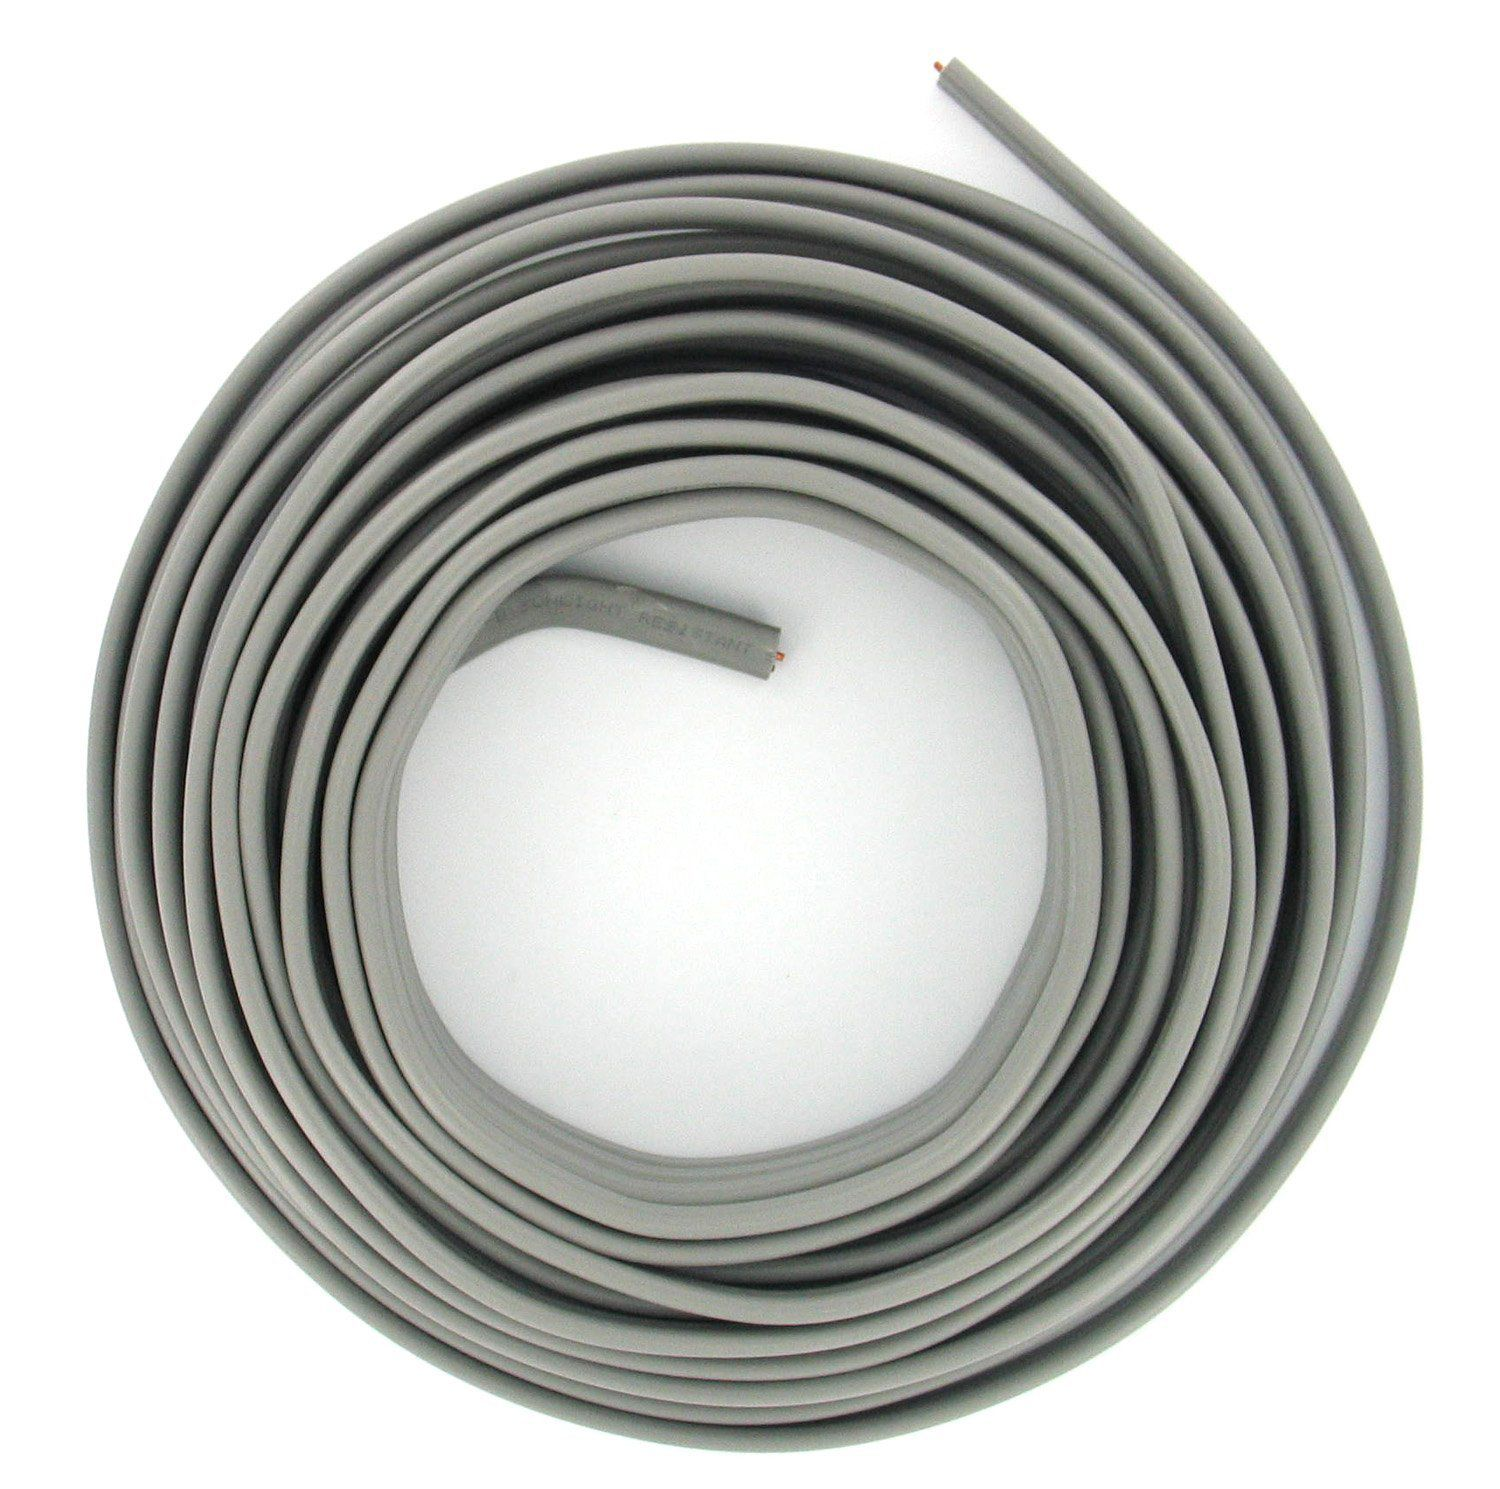 Bury Electrical Cable : What is direct burial cable